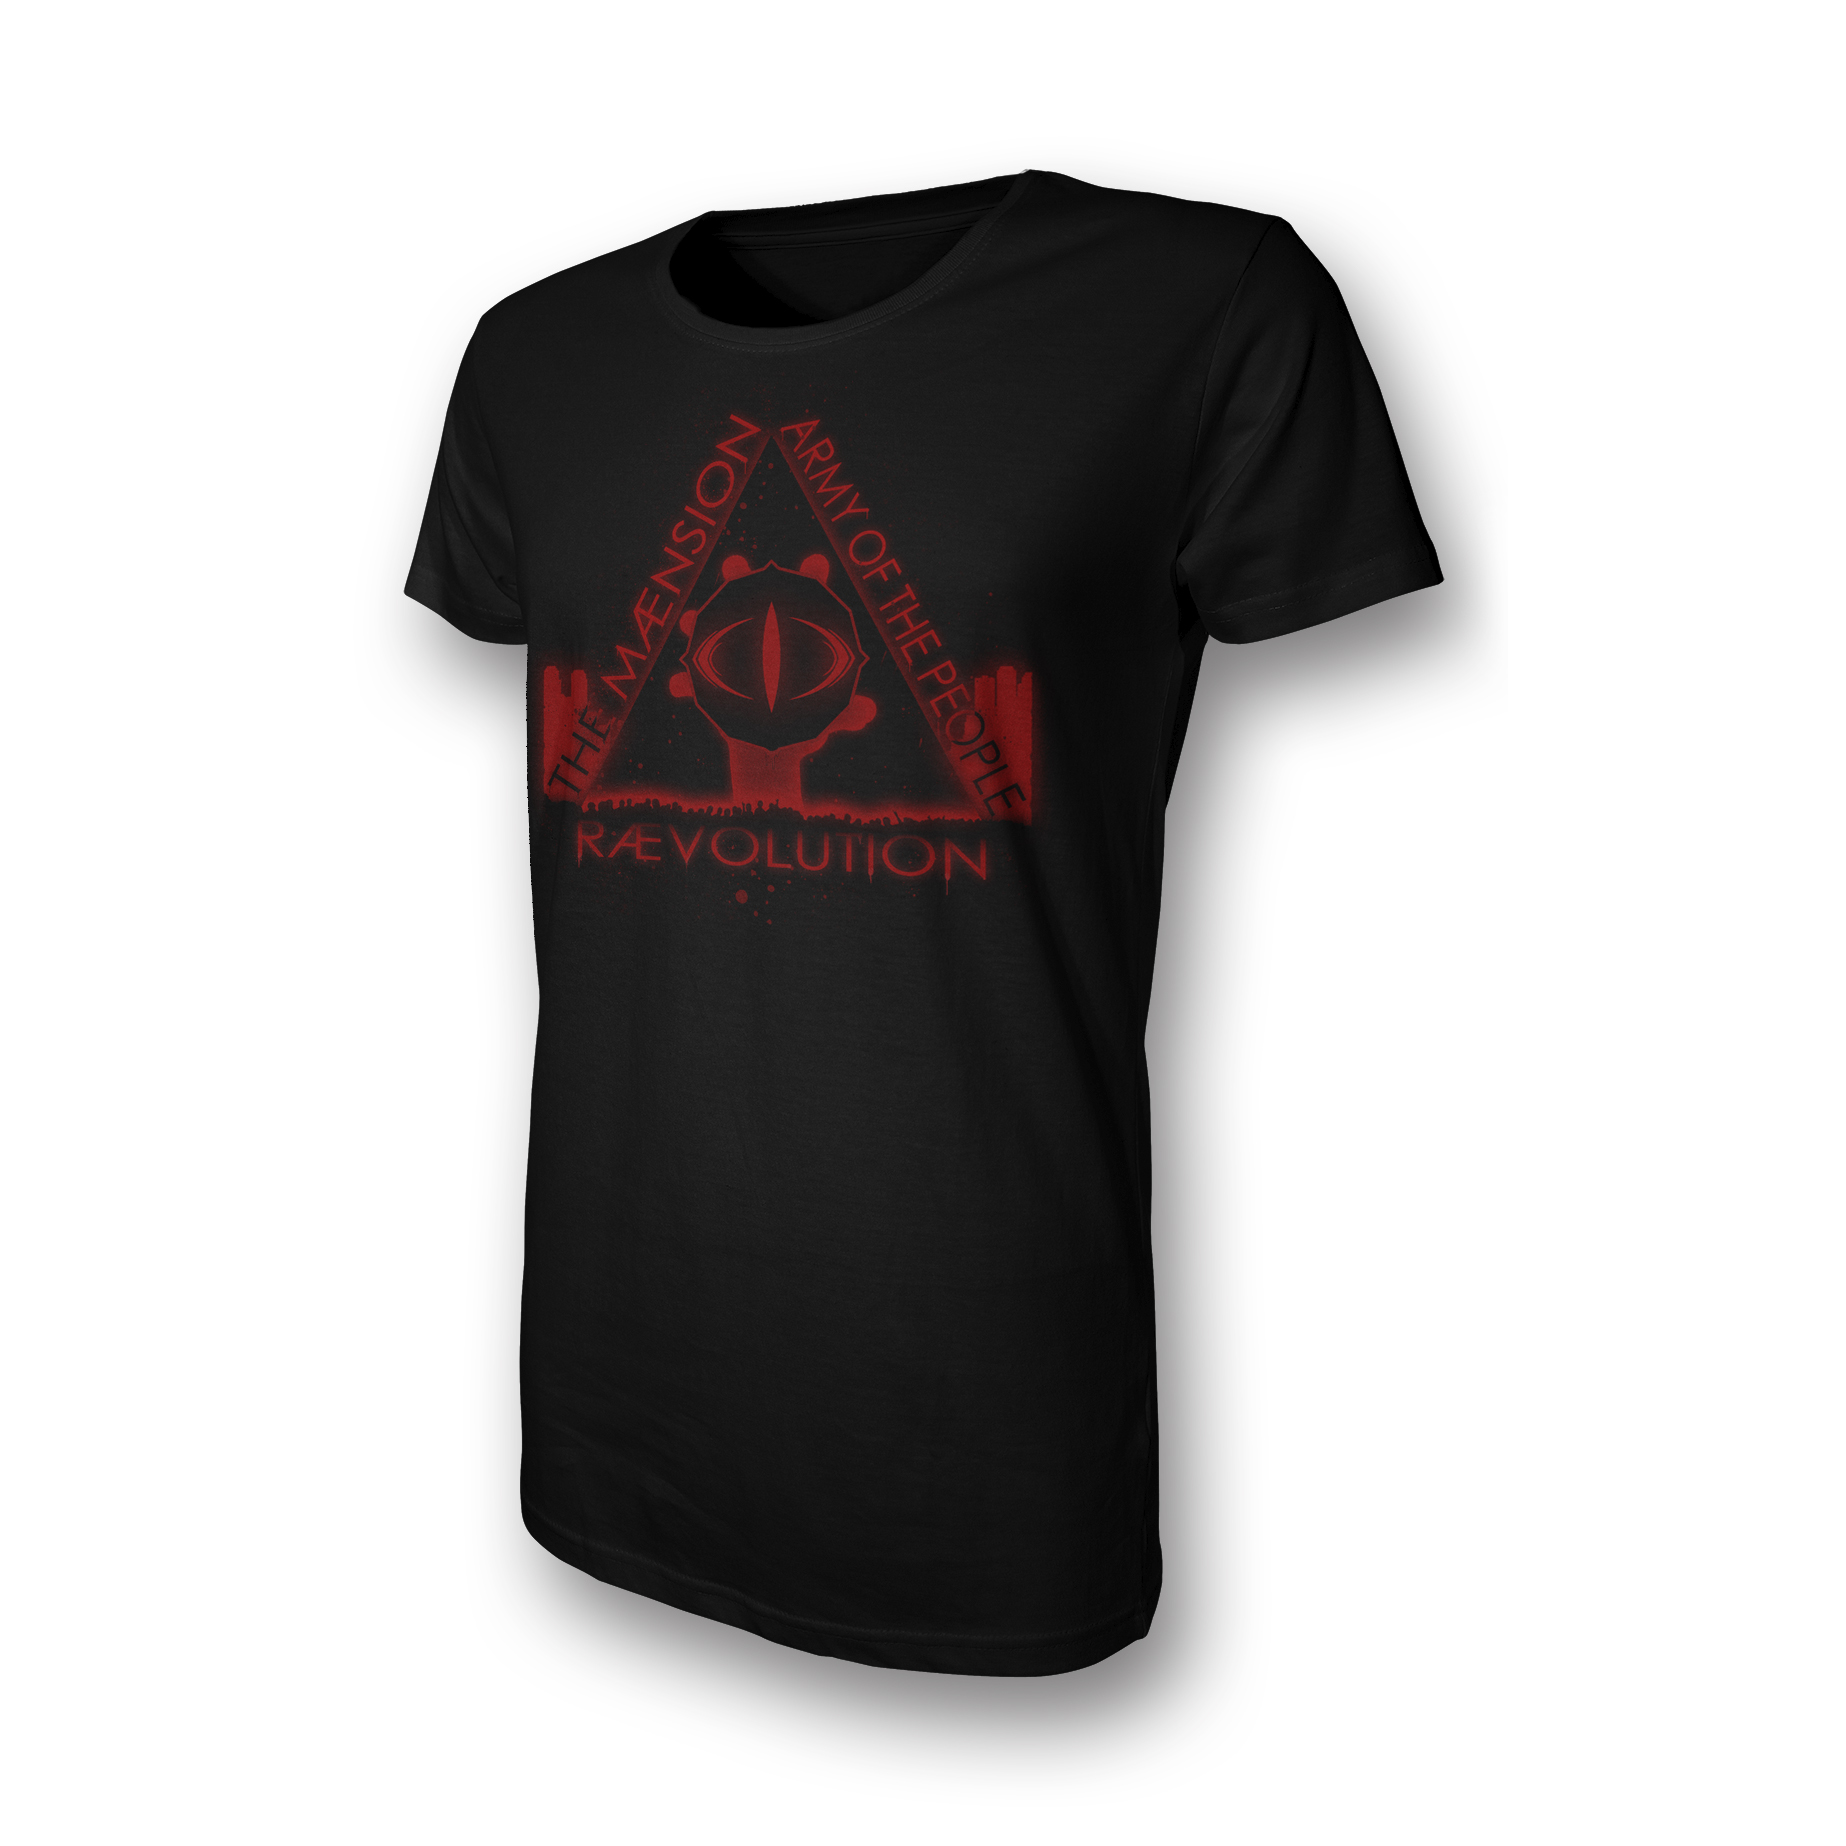 ARMY OF THE PEOPLE T-SHIRT